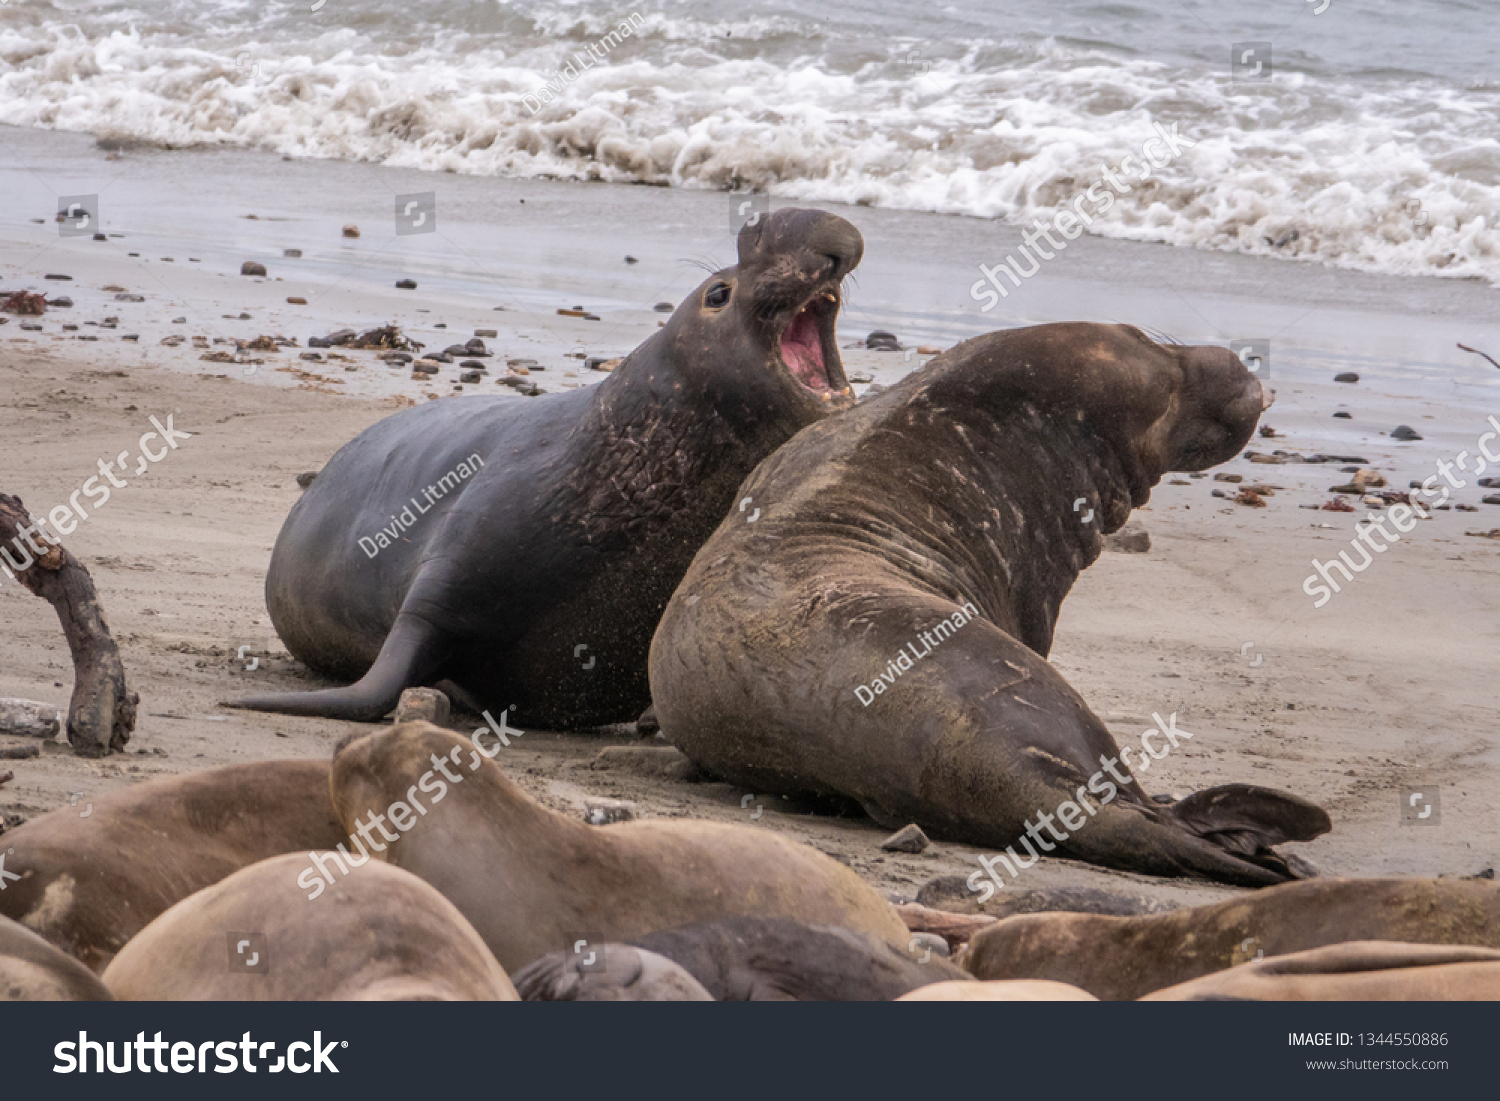 Two Northern Elephant Seal bulls (Mirounga angustirostris) fight for dominance and breeding rights during mating season at Ano Nuevo State Park, in Pescadero, California. They grunt, shove and bite.